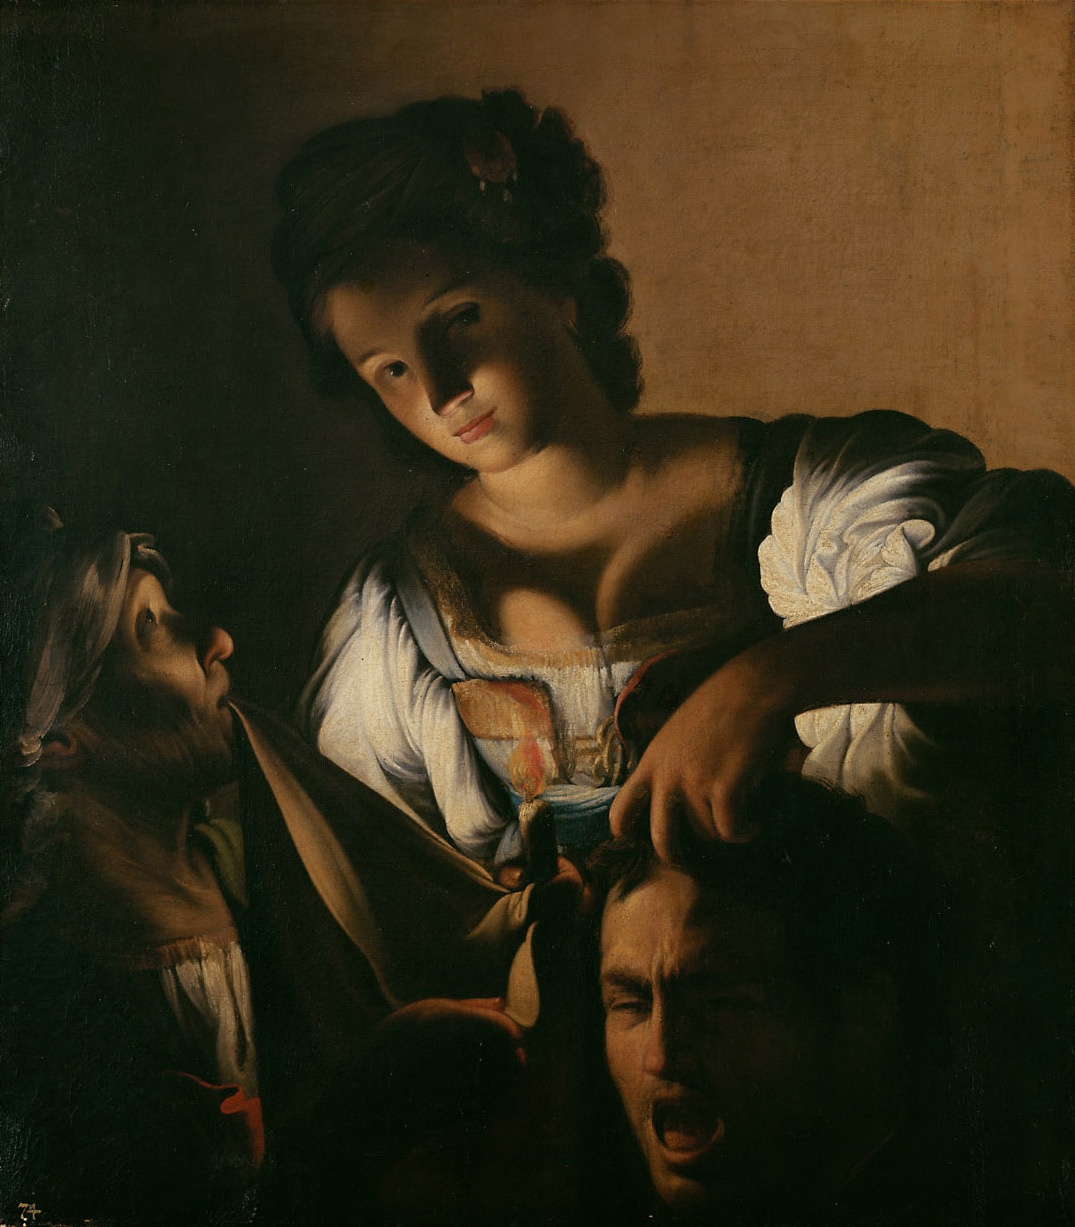 Carlo_Saraceni-1610-15-Judith with the Head of Holophernes-canvas-90×79cm-Kunsthistorisches Museum, Wien.jpg